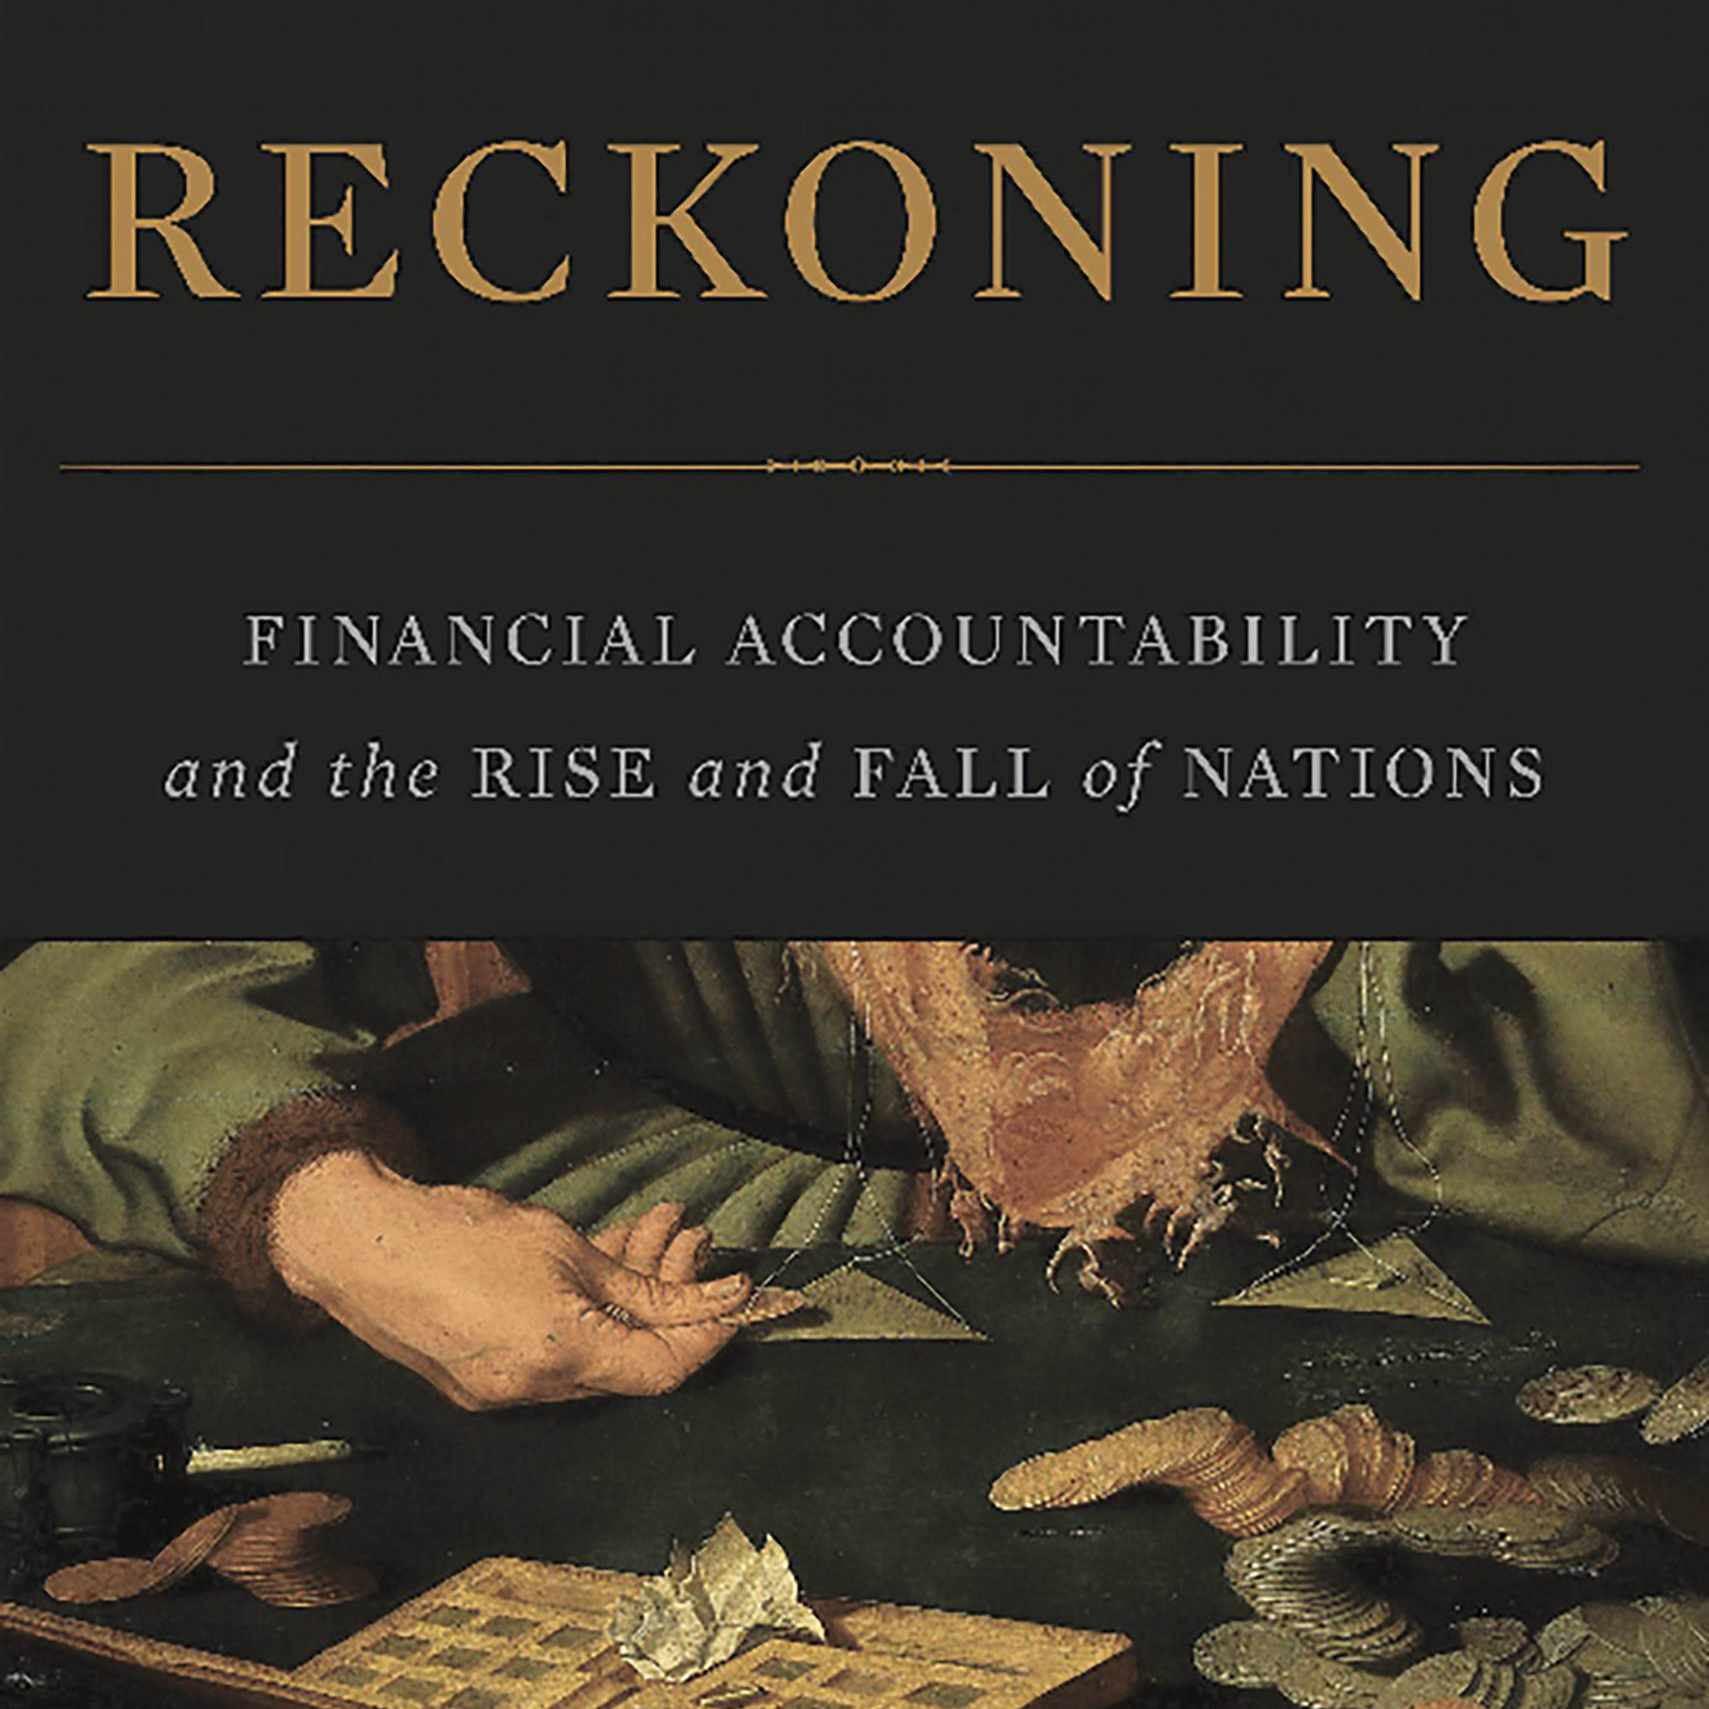 The Reckoning : Financial Accountability and the Rise and Fall of Nations